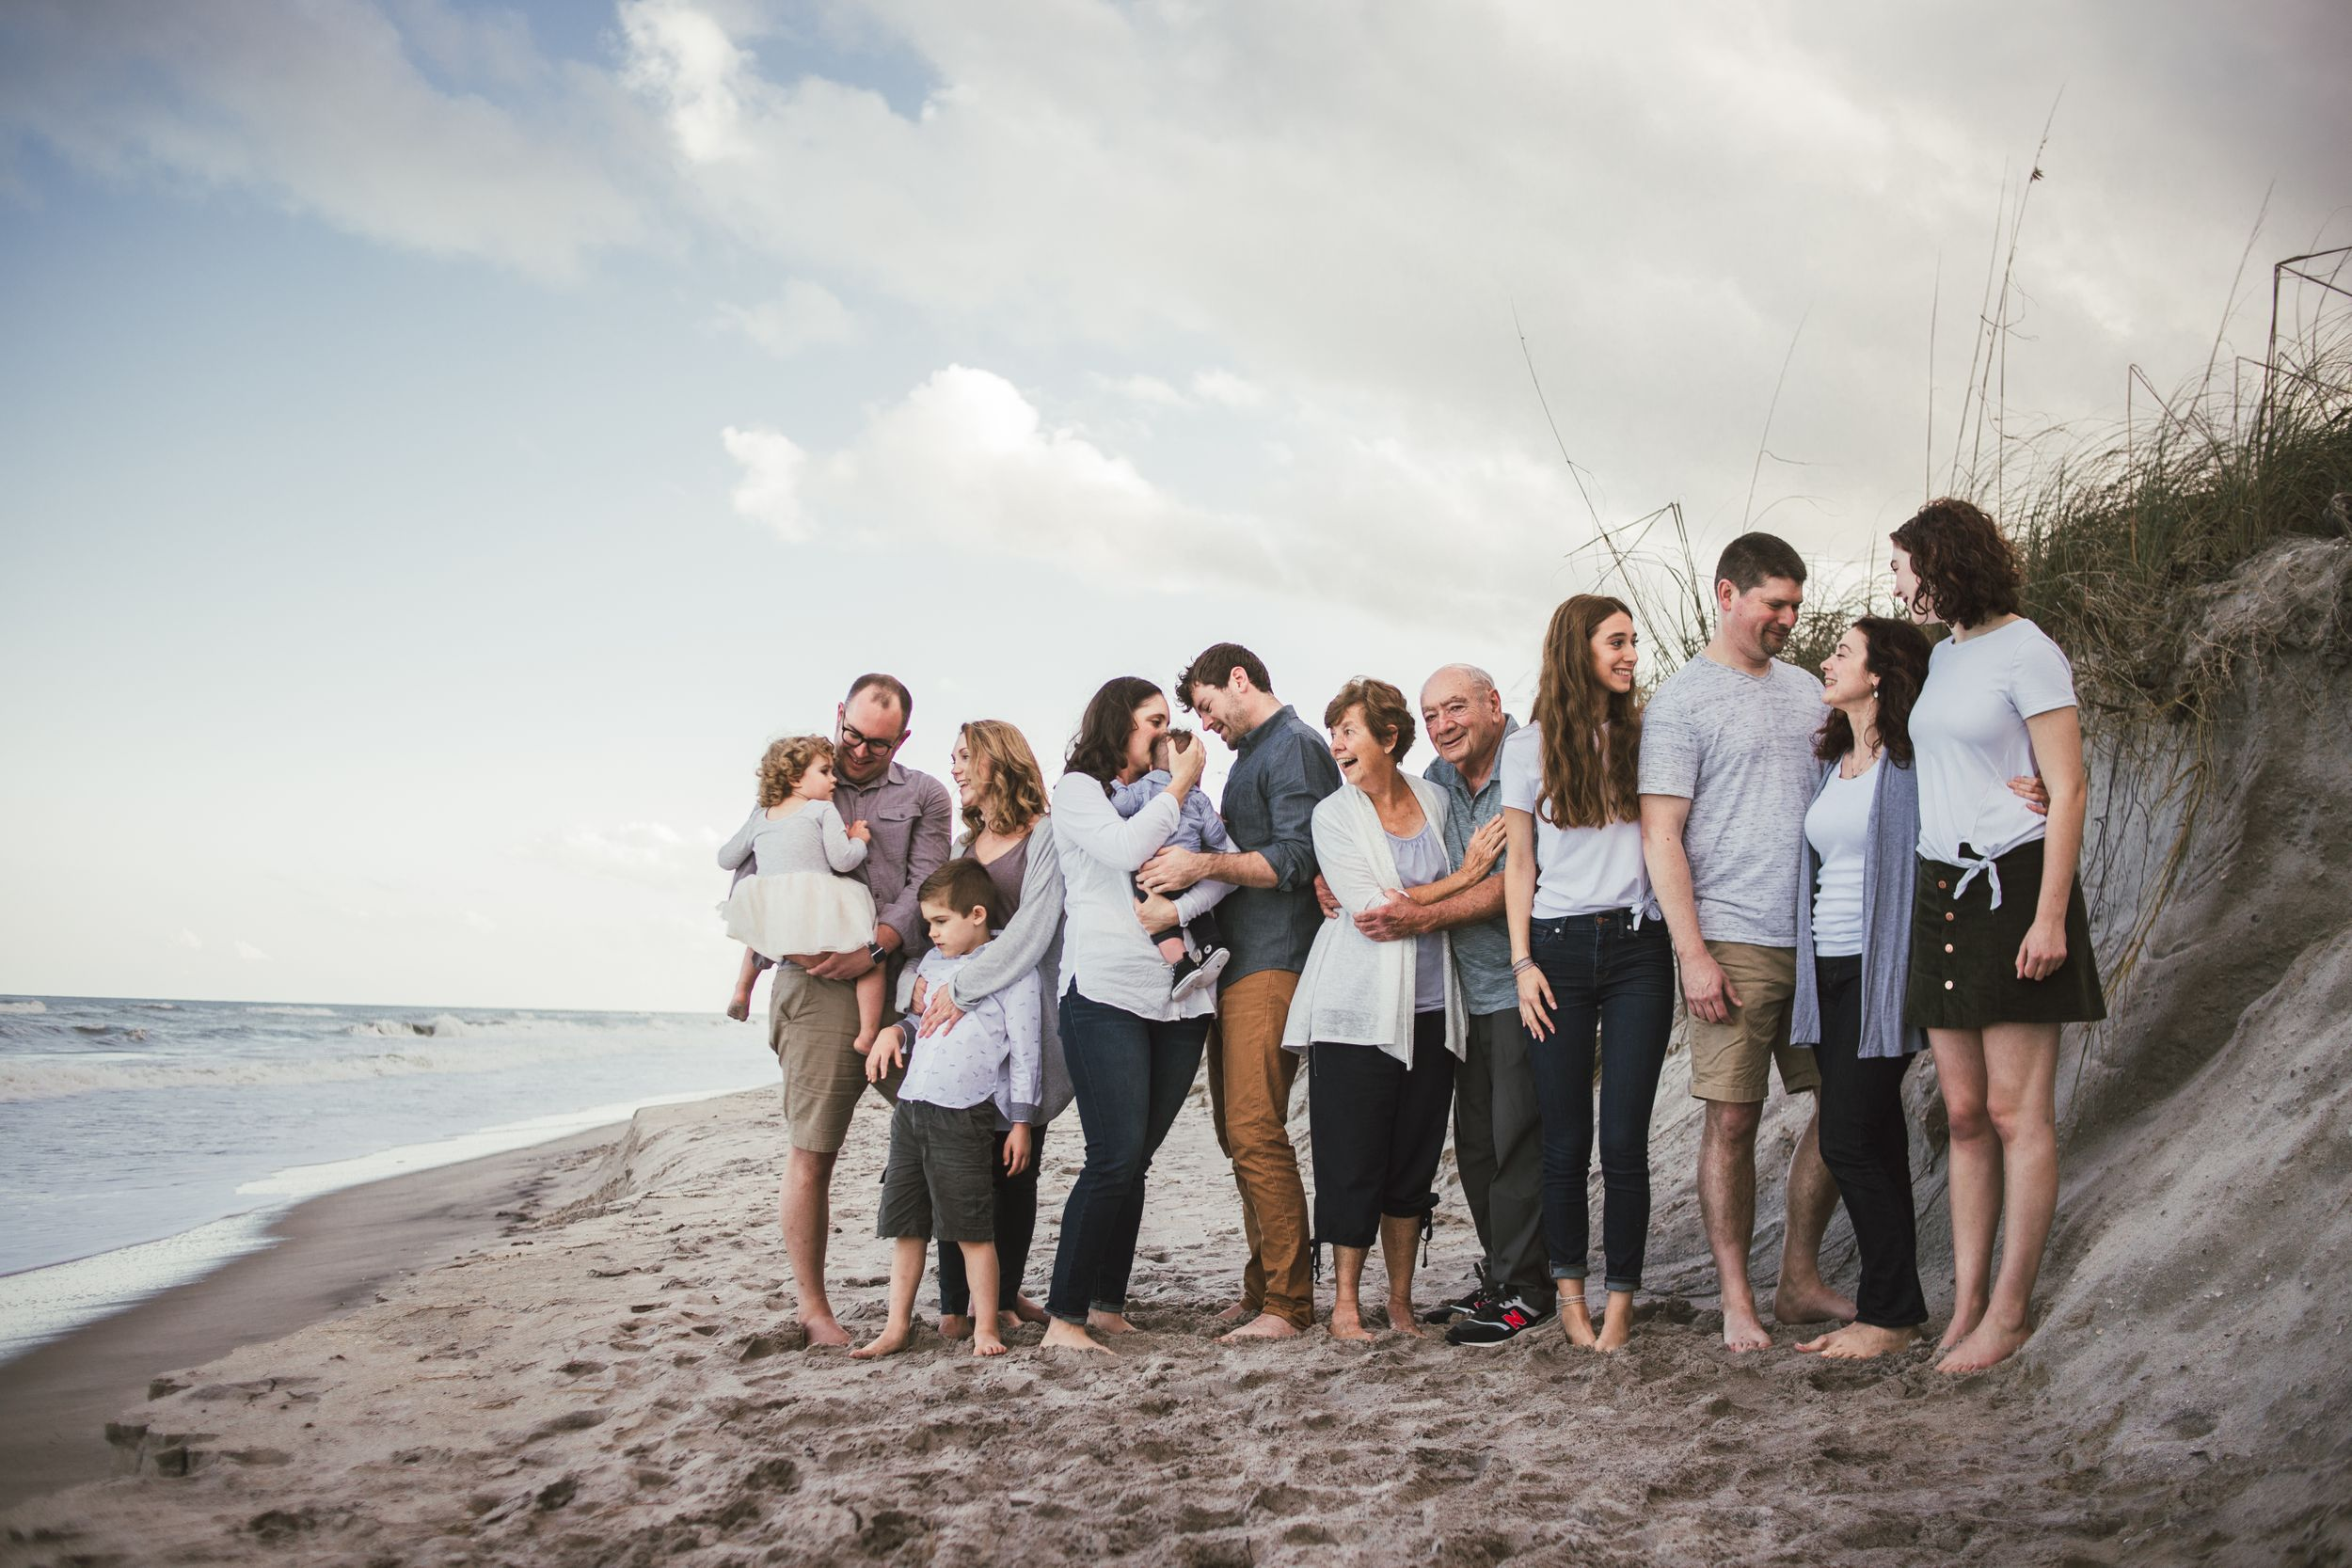 An extended family on the beach at sunset. Grandparents are surrounded by their family. Ages two months to 80 years.